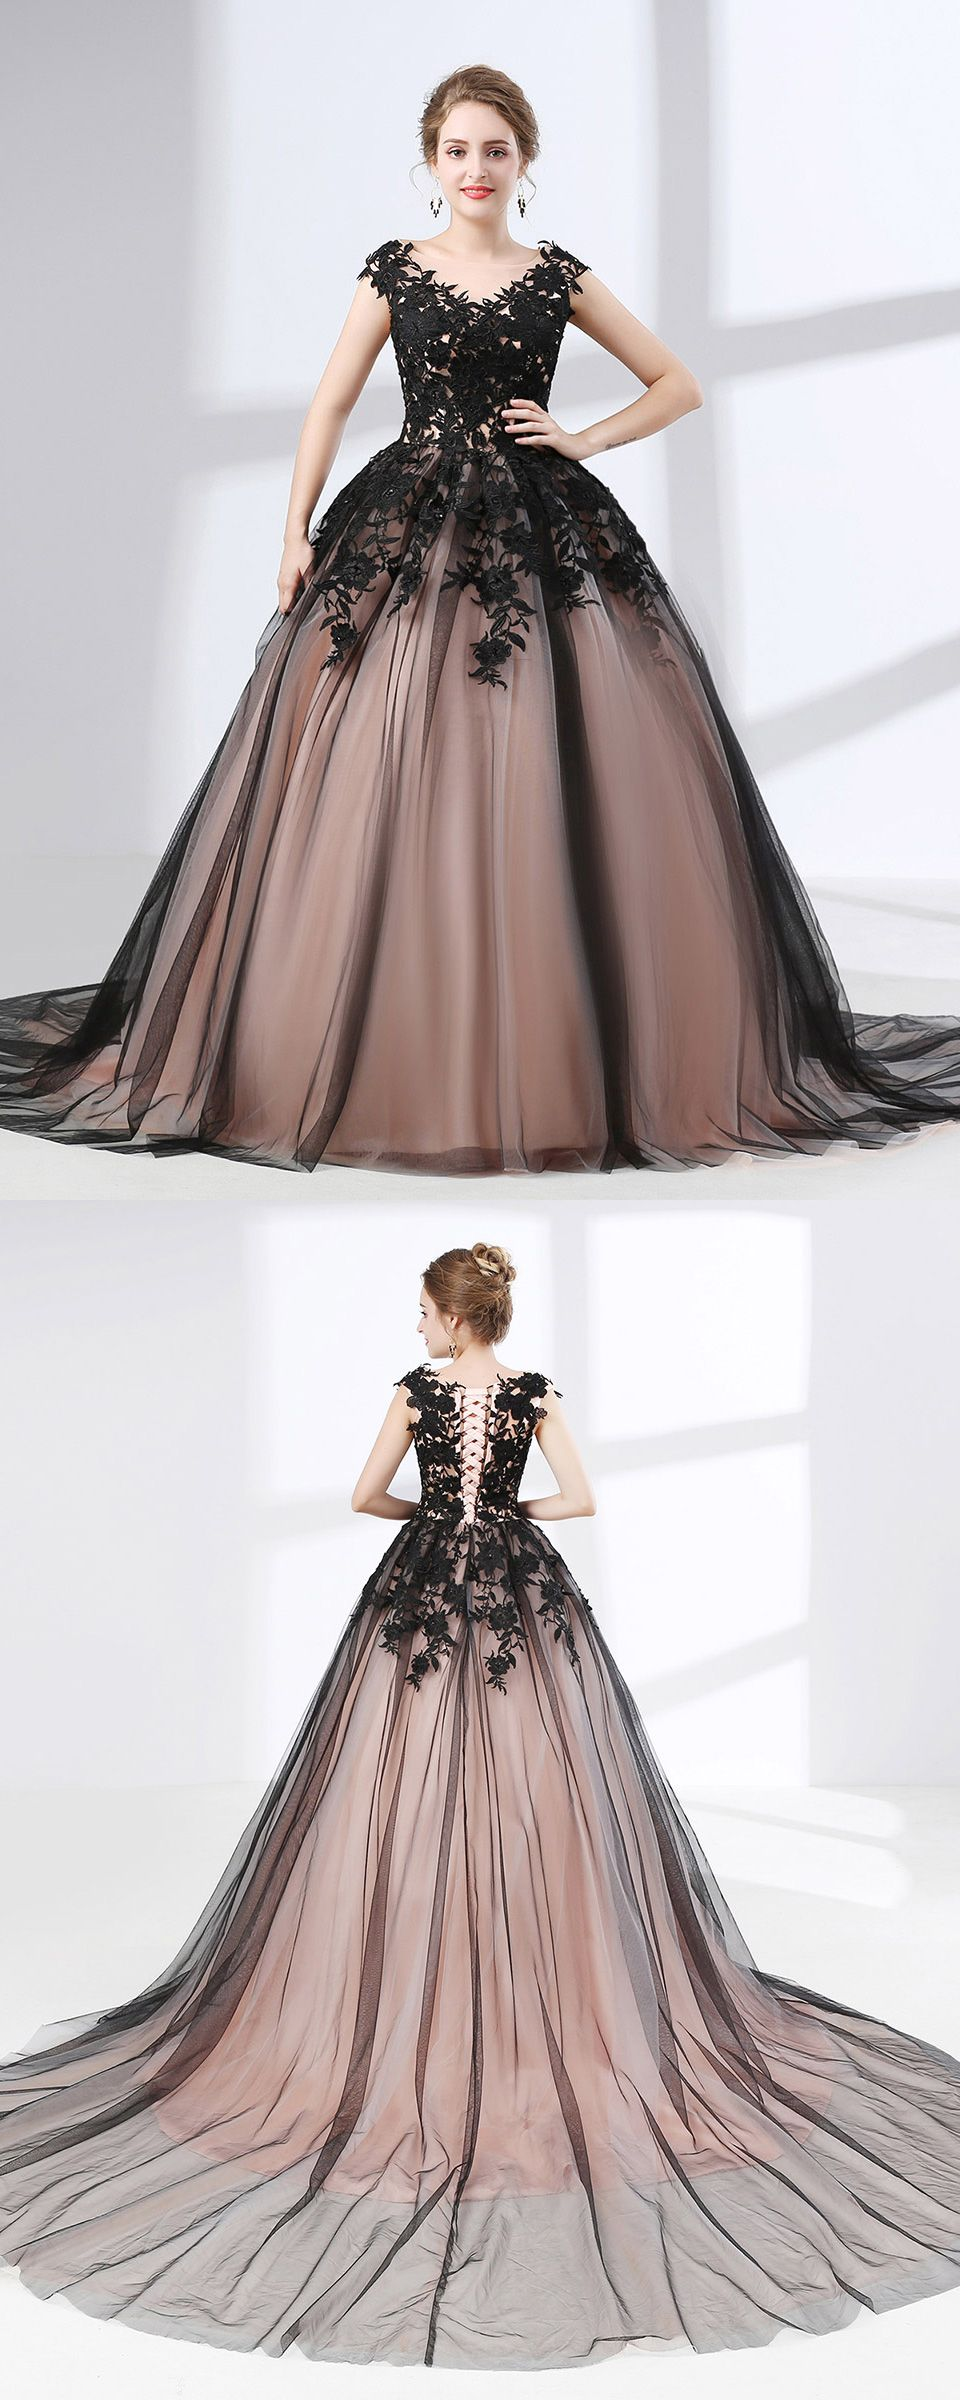 Country ball gown black quinceanera dress long train with lace